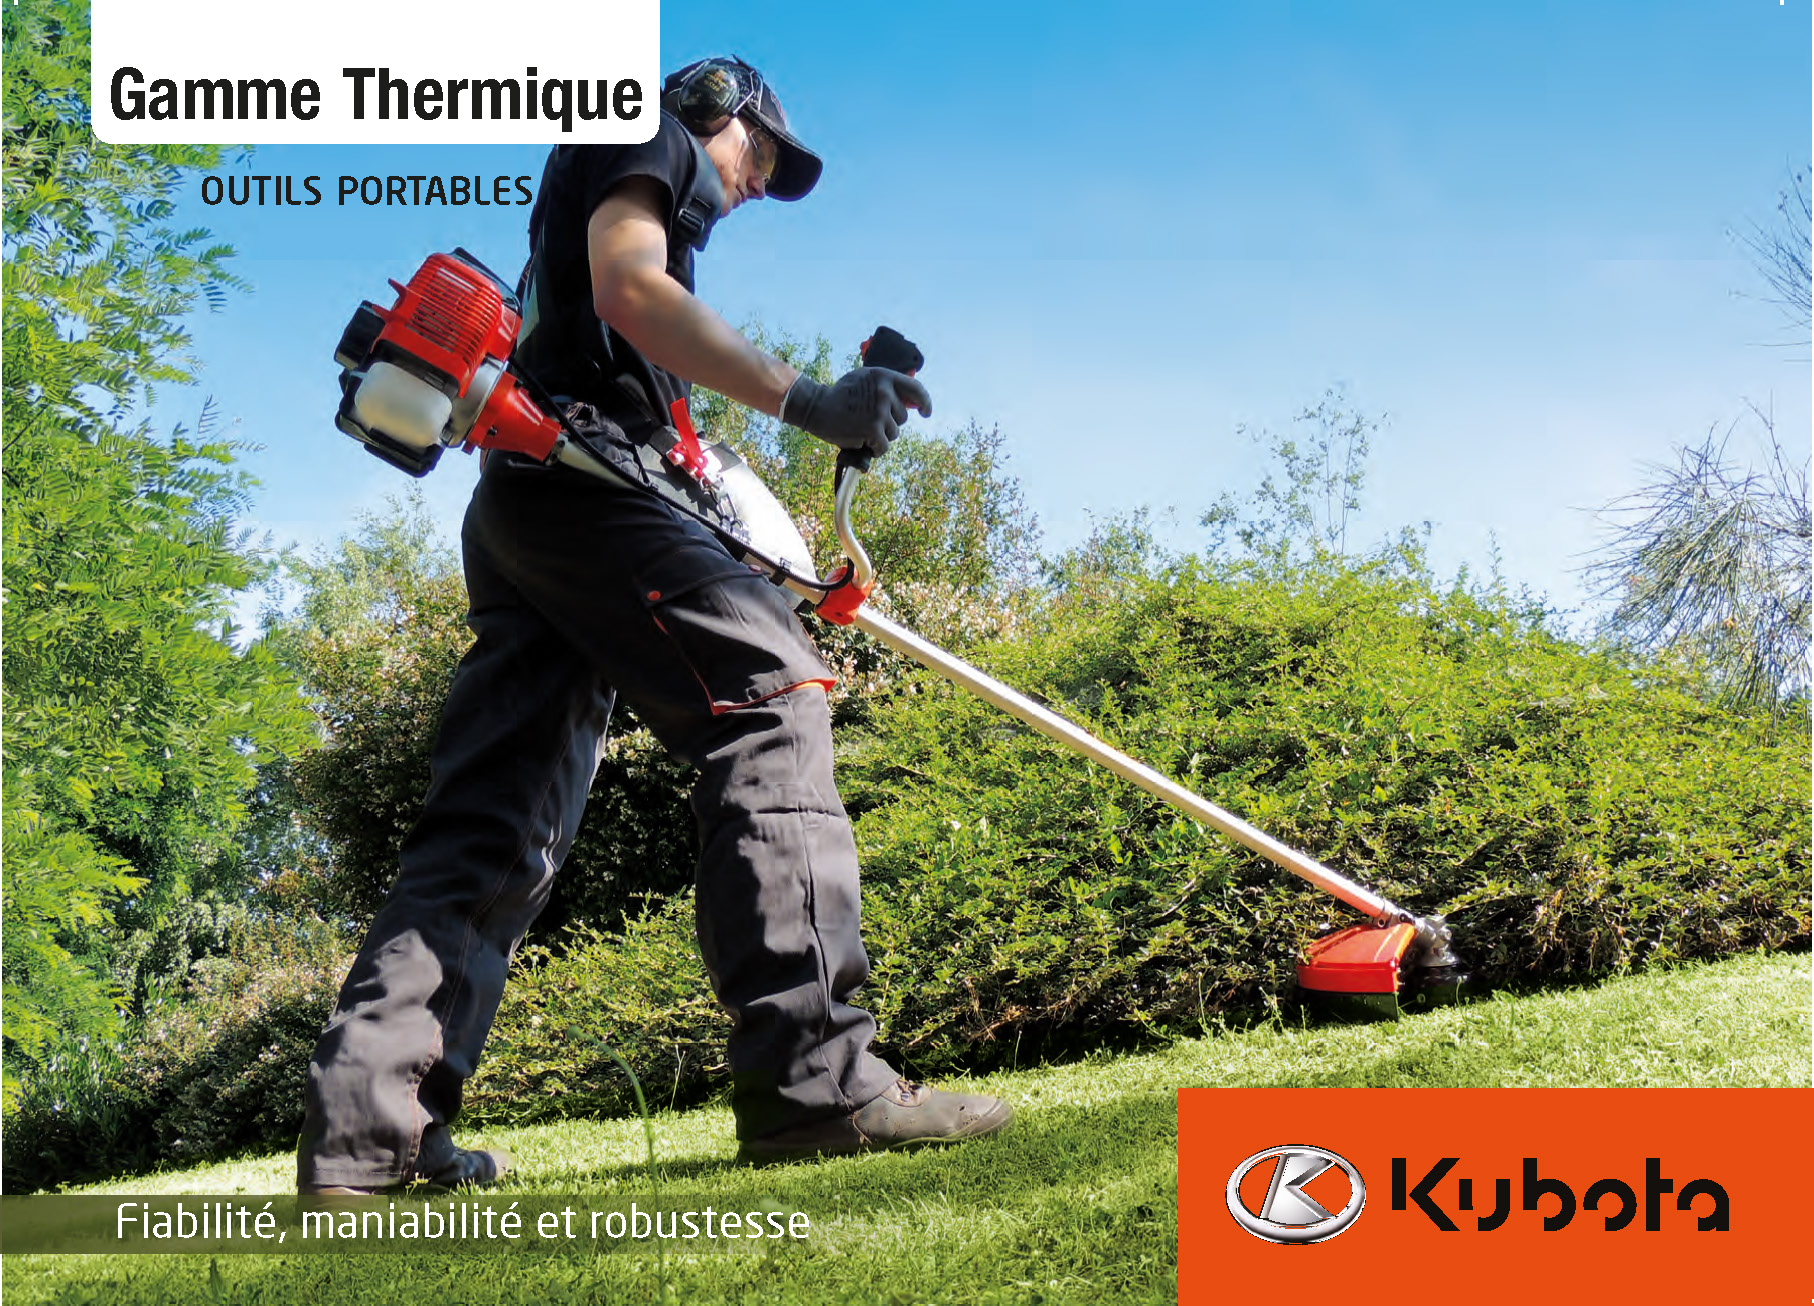 Catalogue-Outils-Gamme-thermique KUBOTA_Page_1